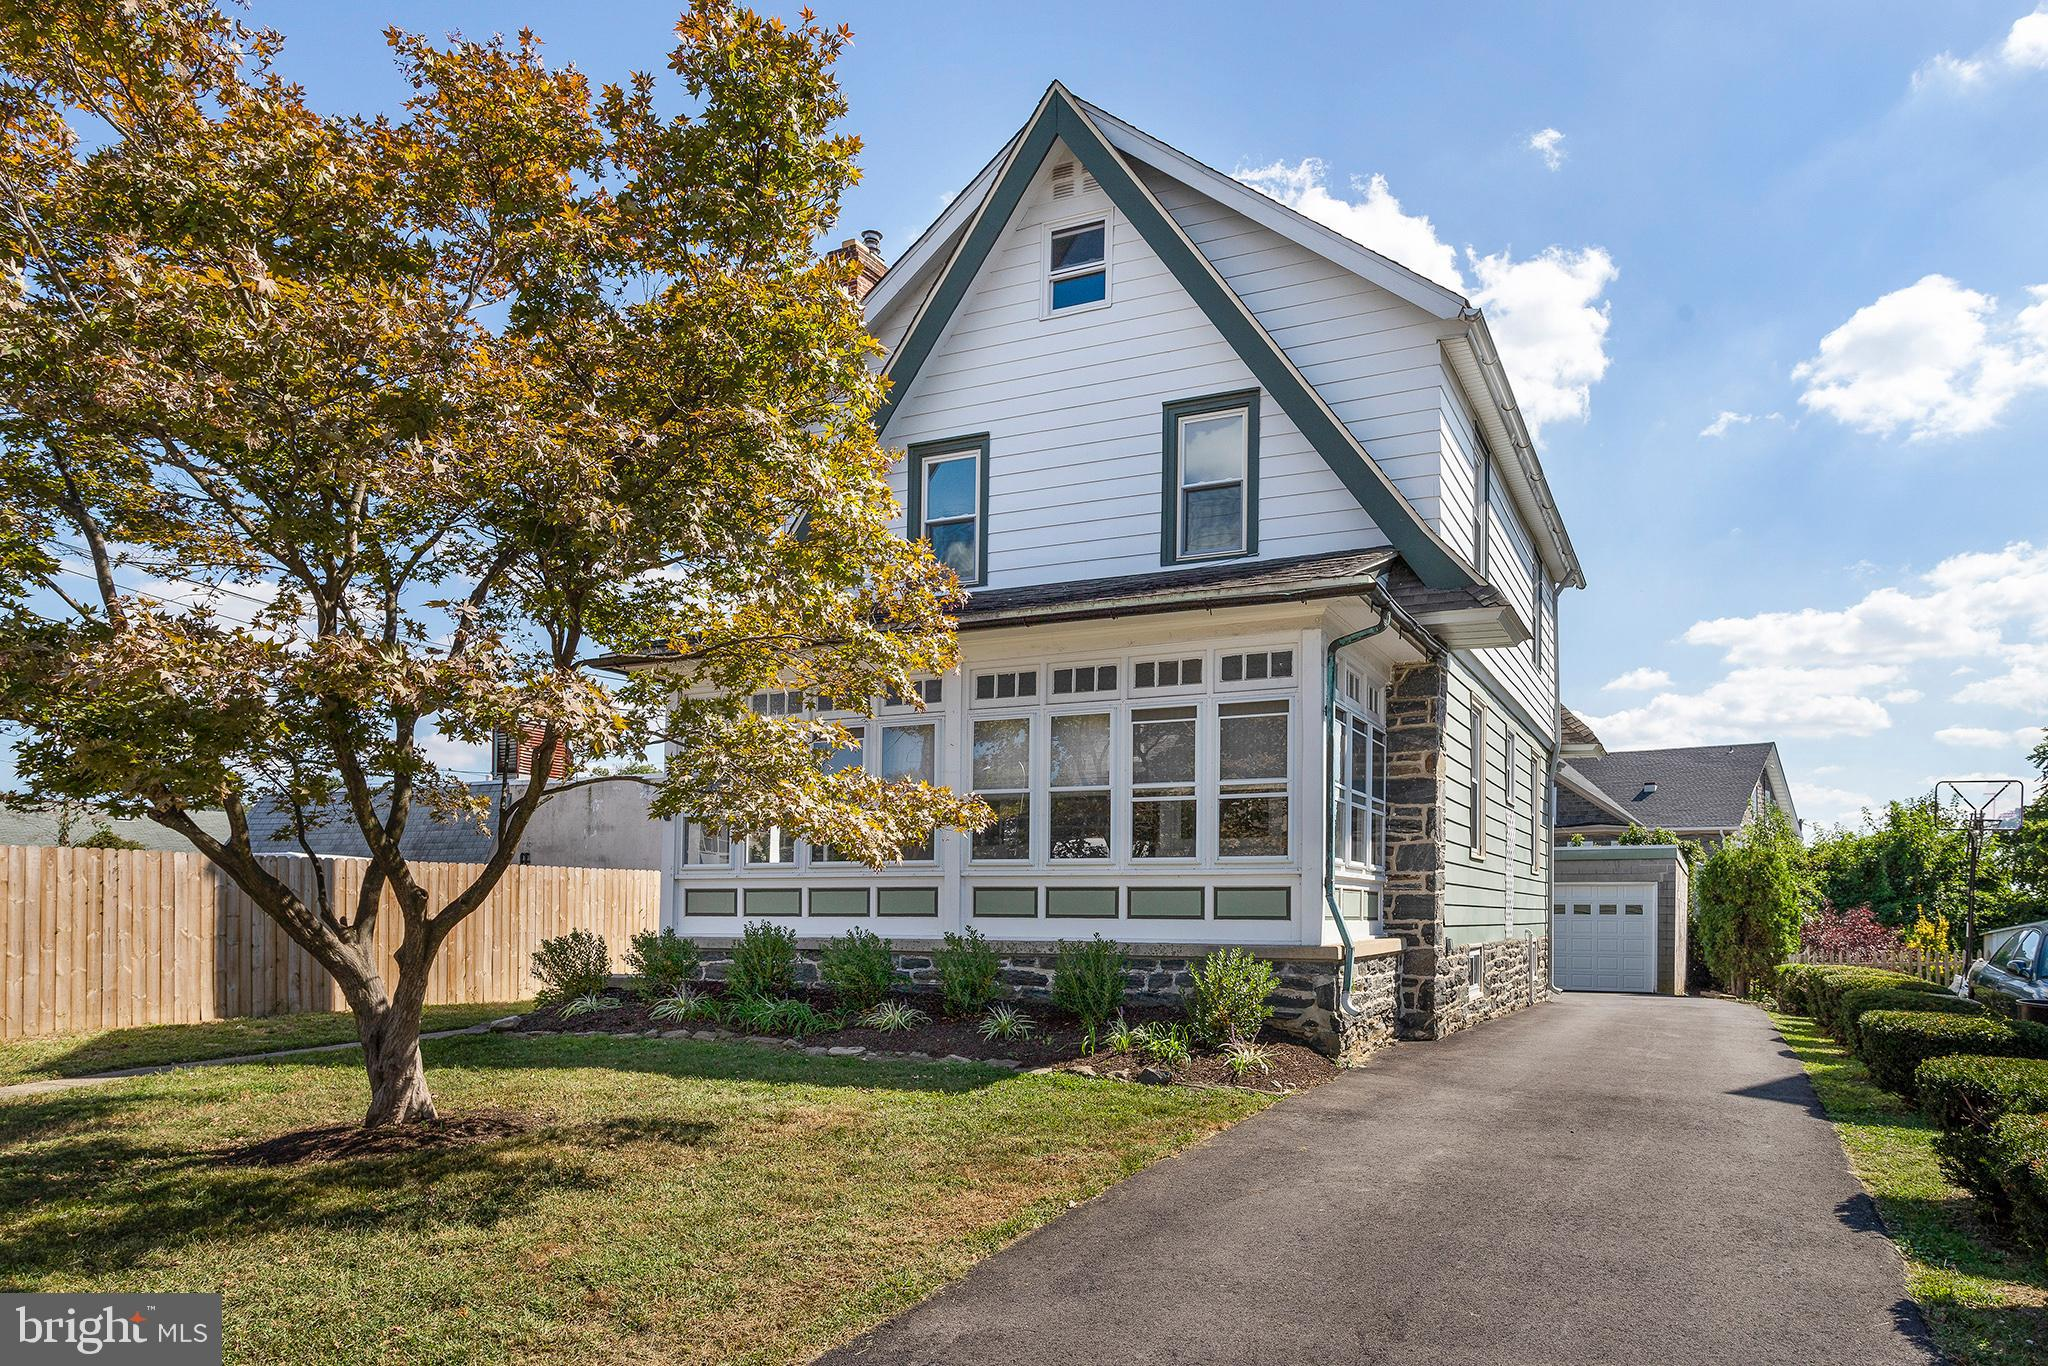 7 RALSTON AVENUE, HAVERTOWN, PA 19083